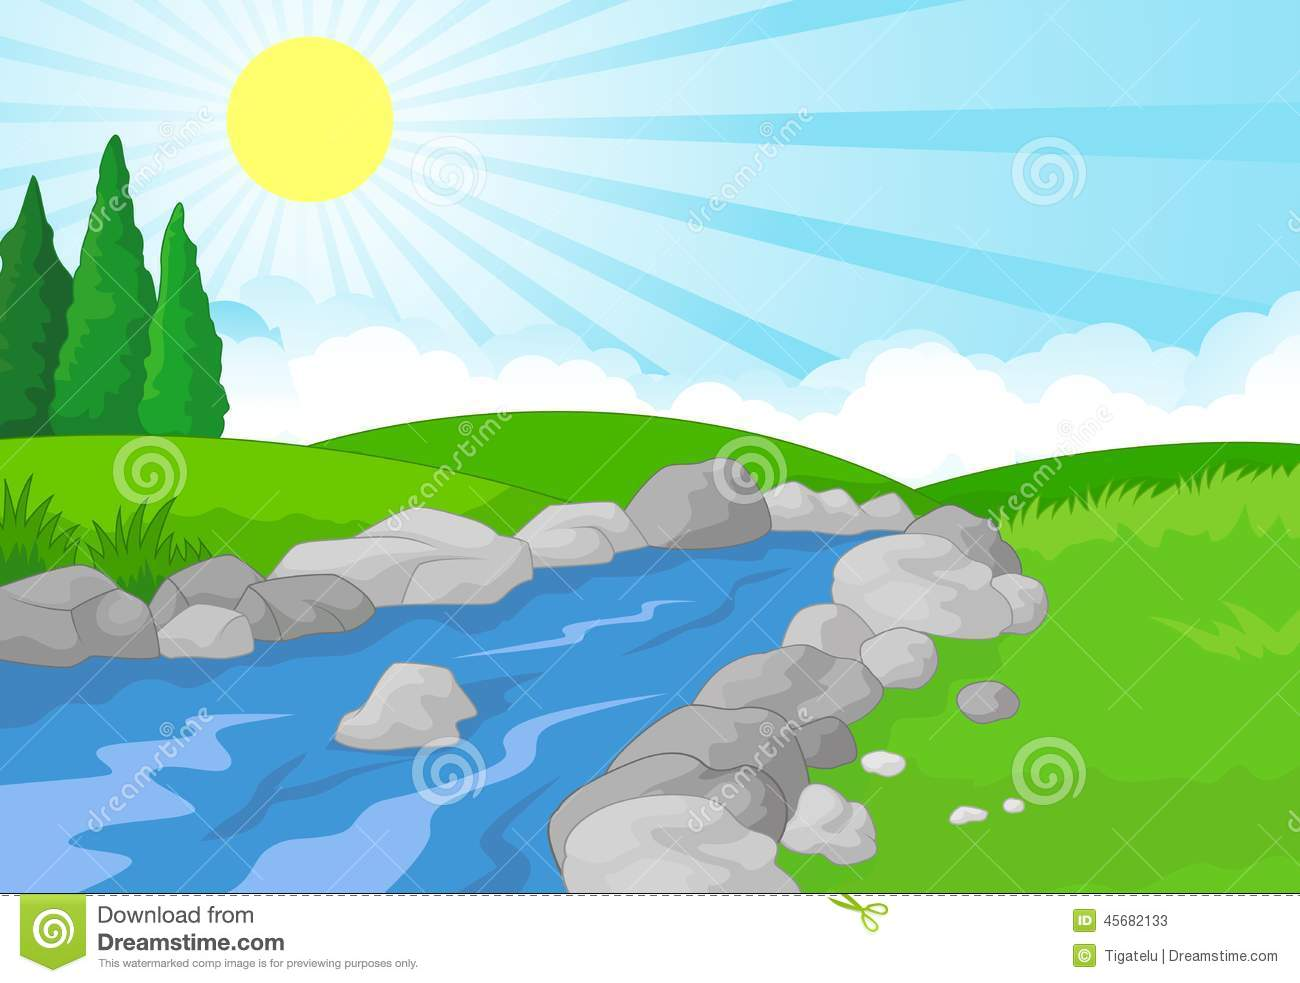 River background clipart clip art royalty free stock Green River Background Stock Photo - Image: 49260894 clip art royalty free stock